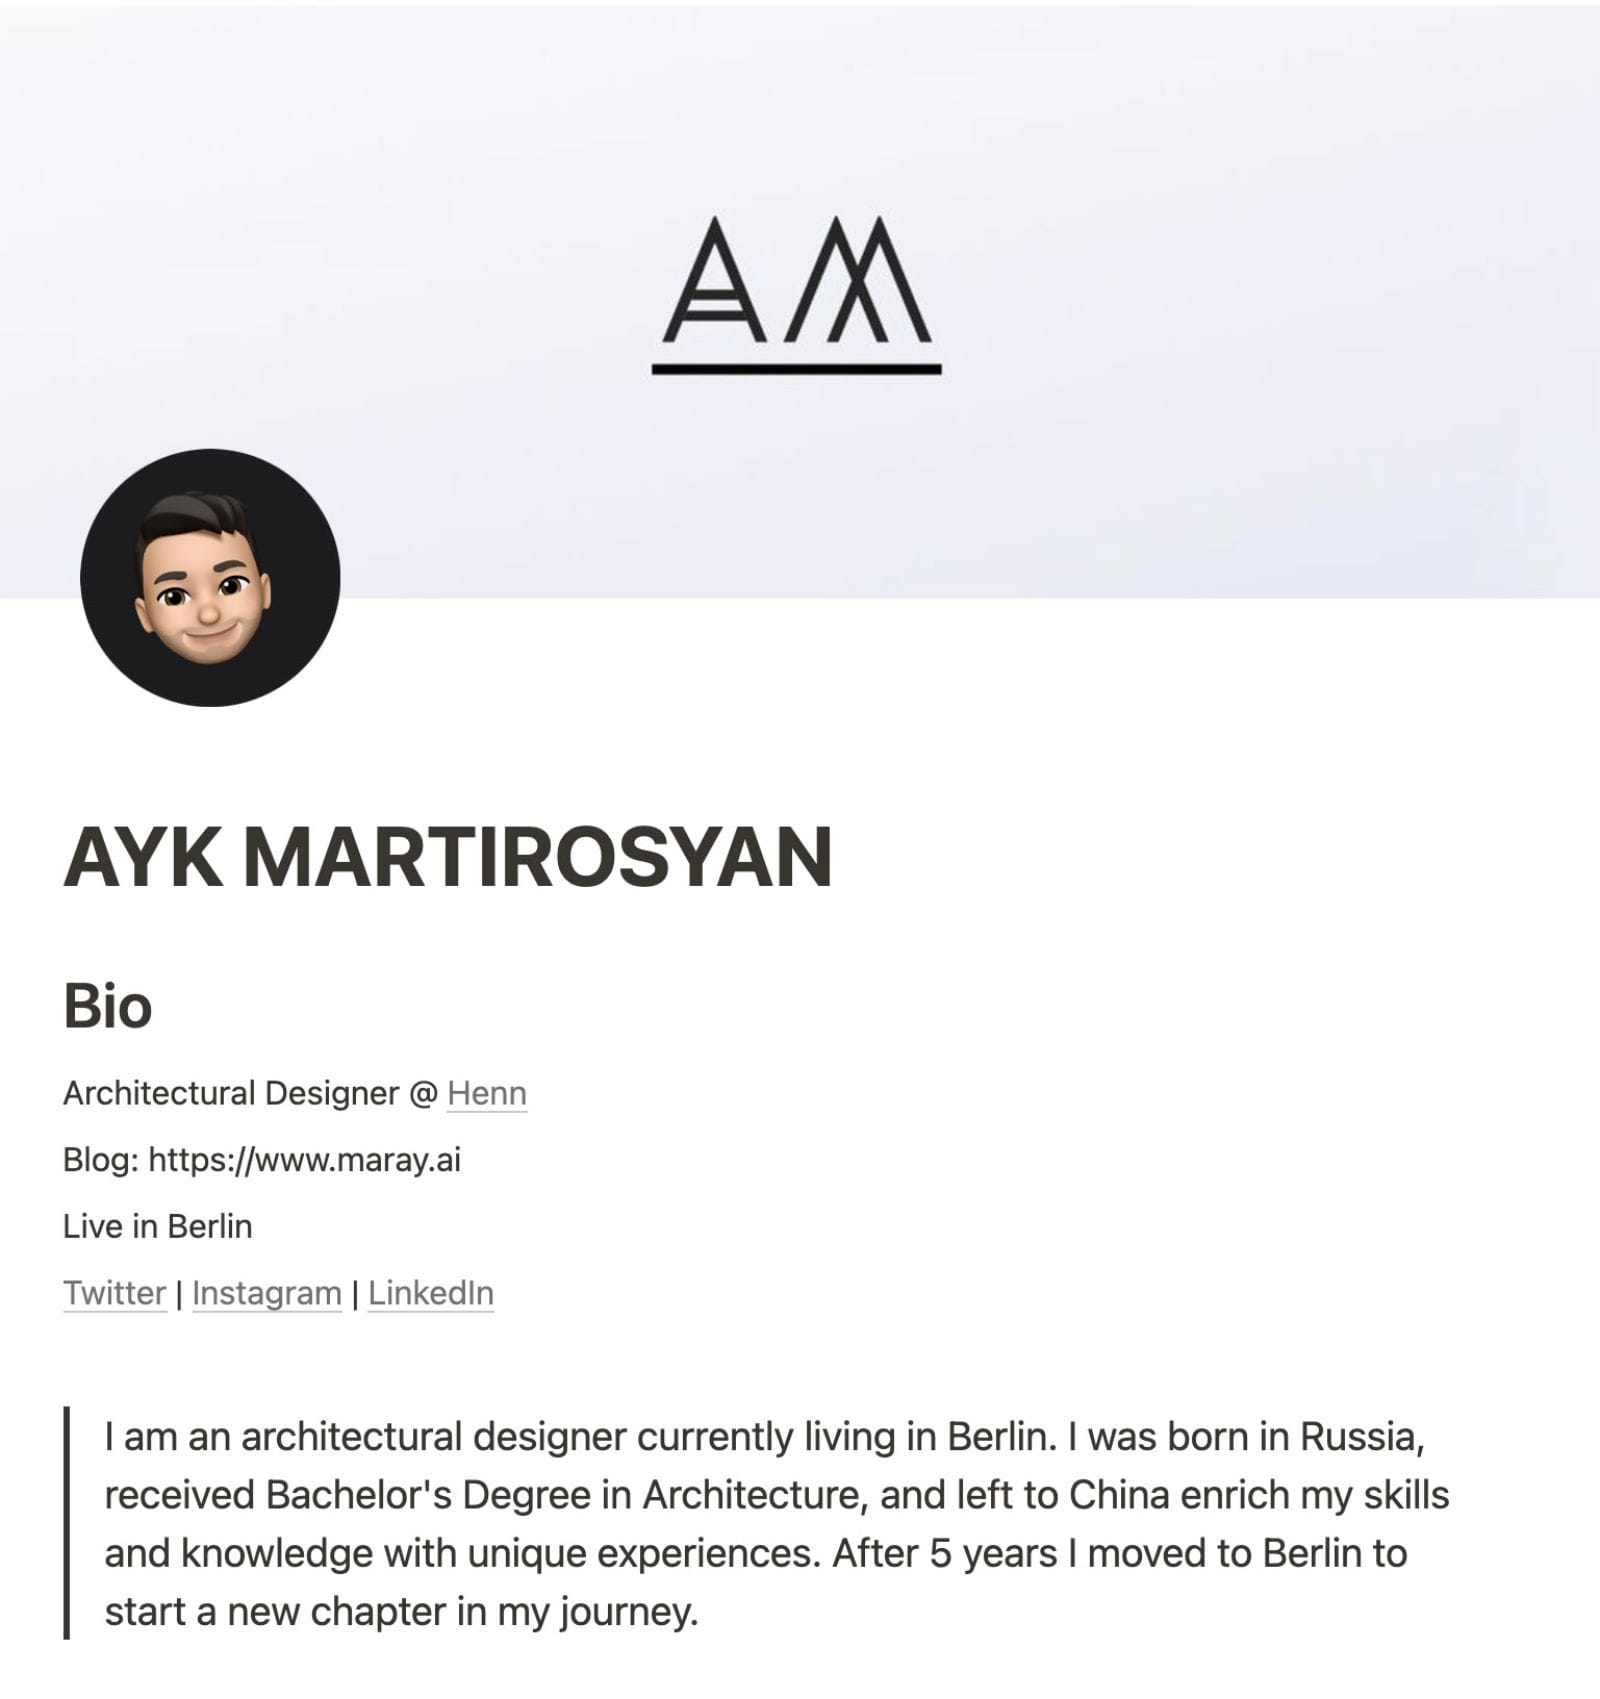 Main page of the resume.